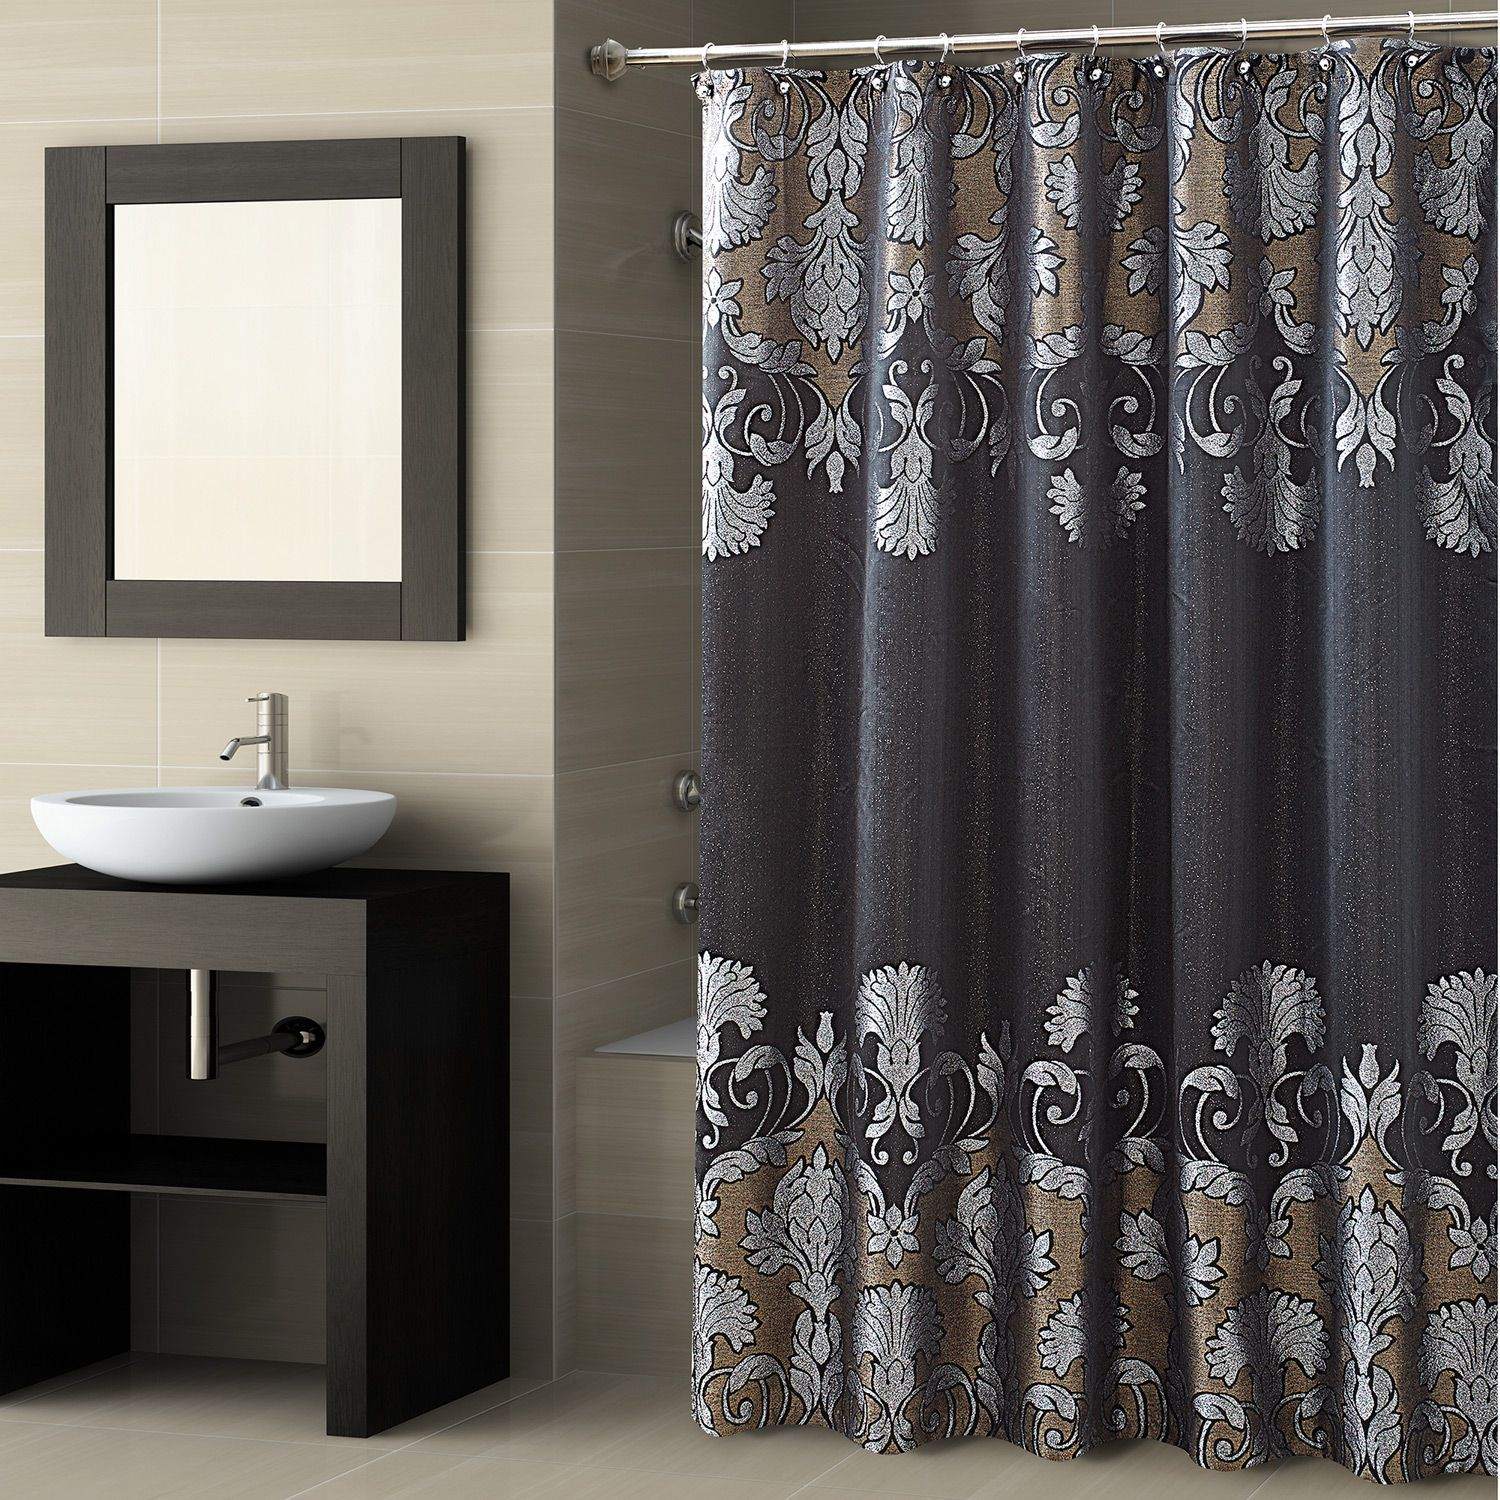 Designer Shower Curtains Nz Shower Curtain Decor Black Shower